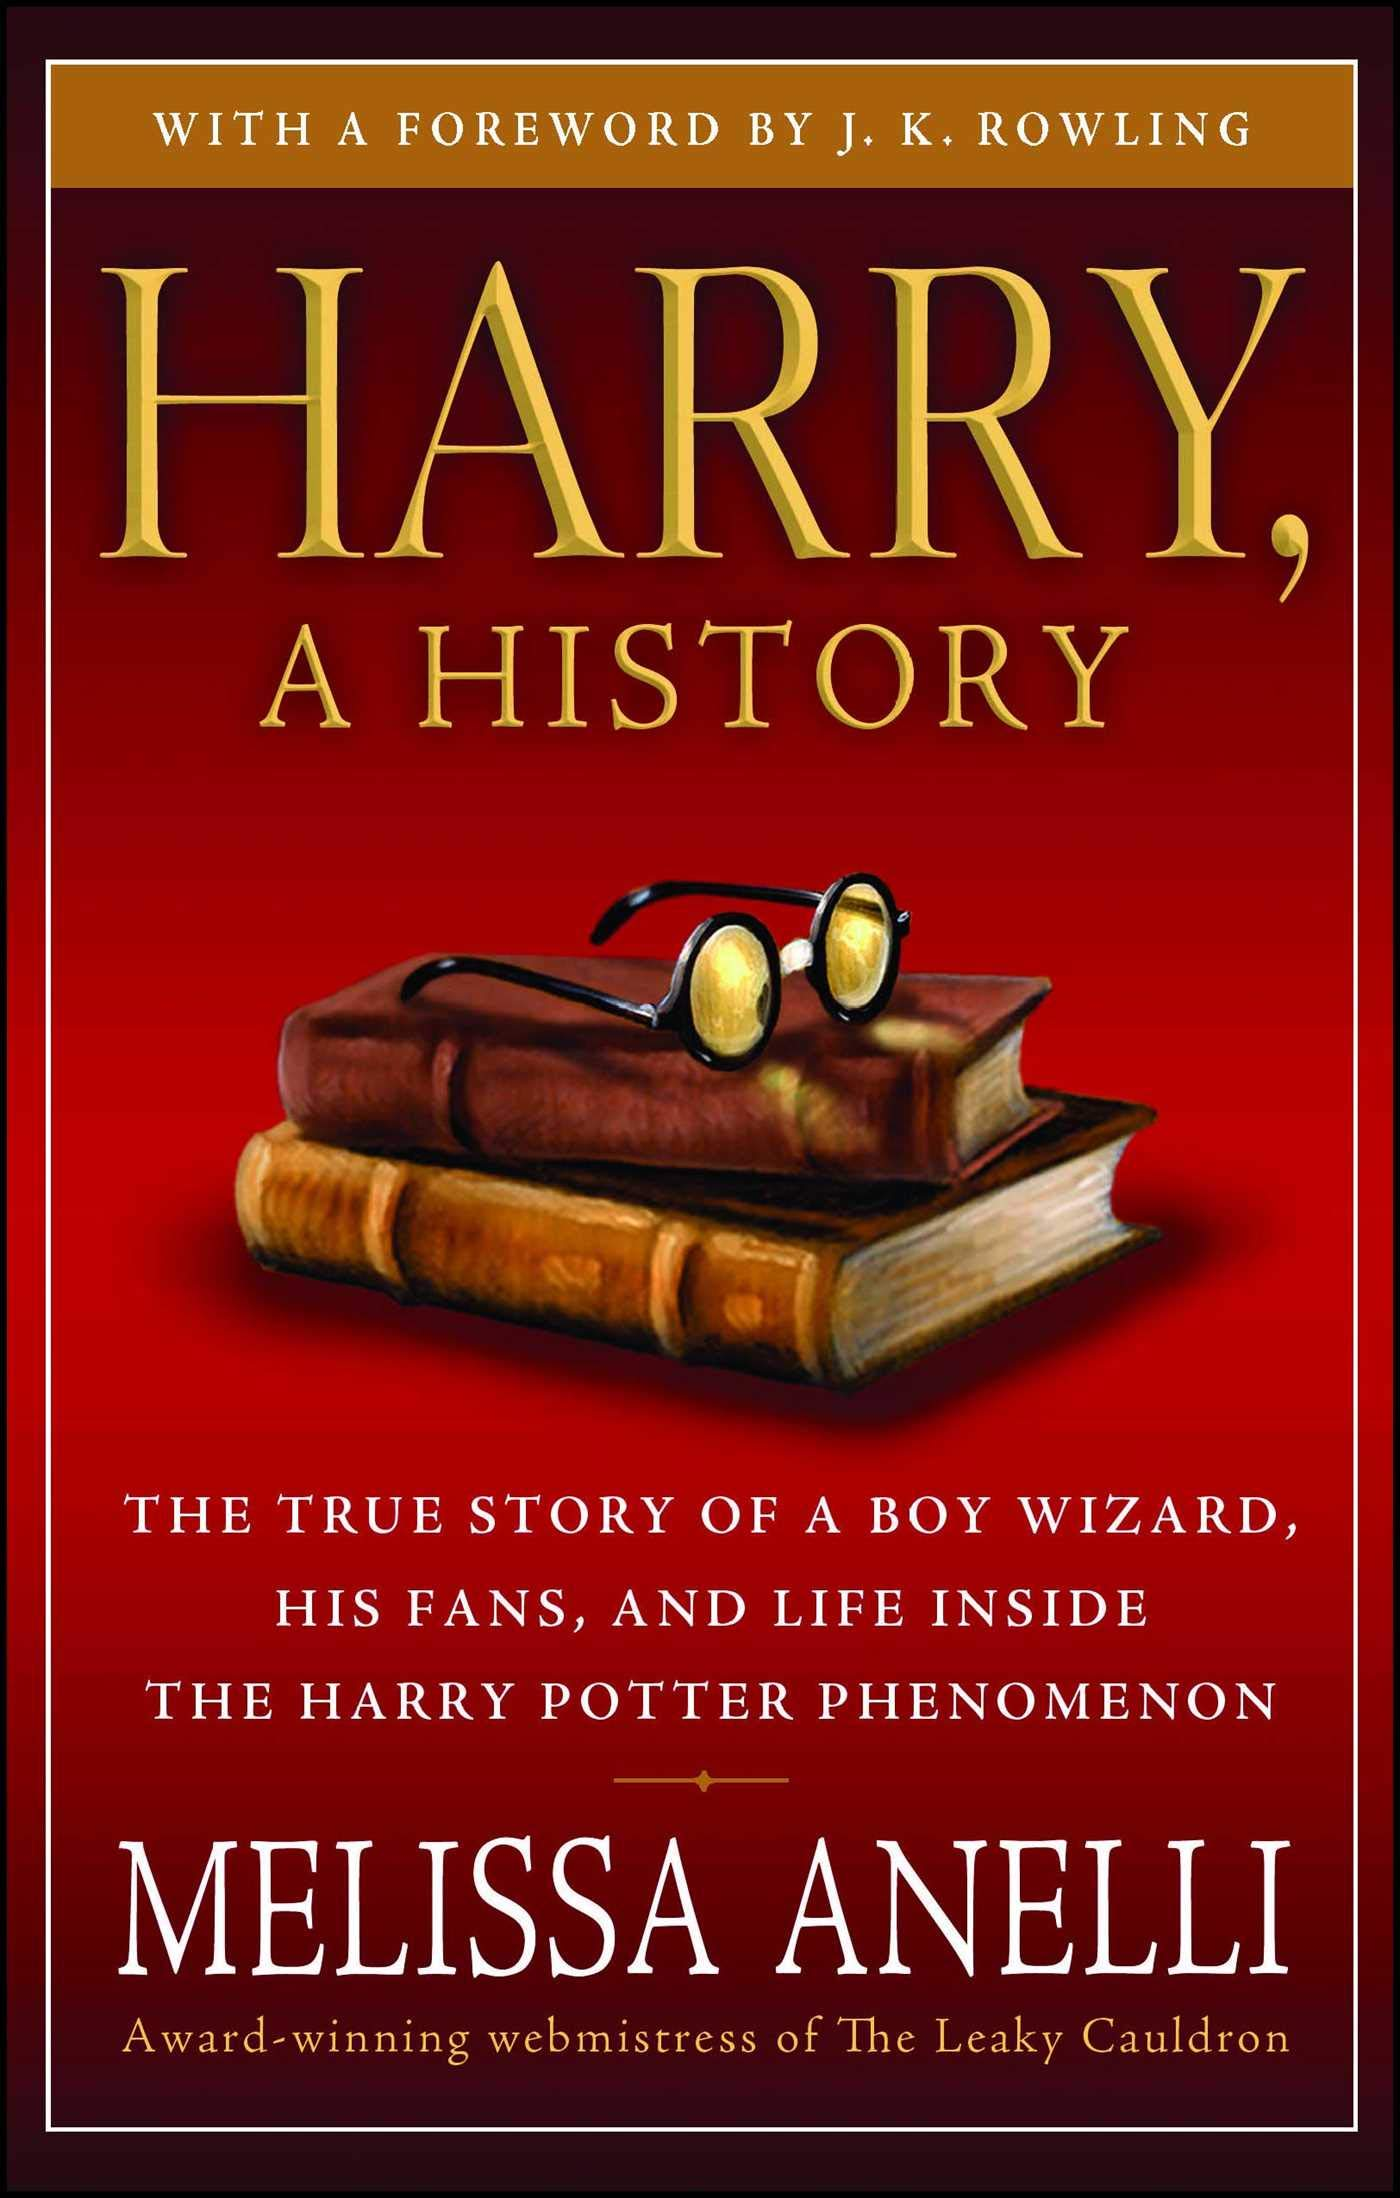 Amazon com: Harry, A History: The True Story of a Boy Wizard, His